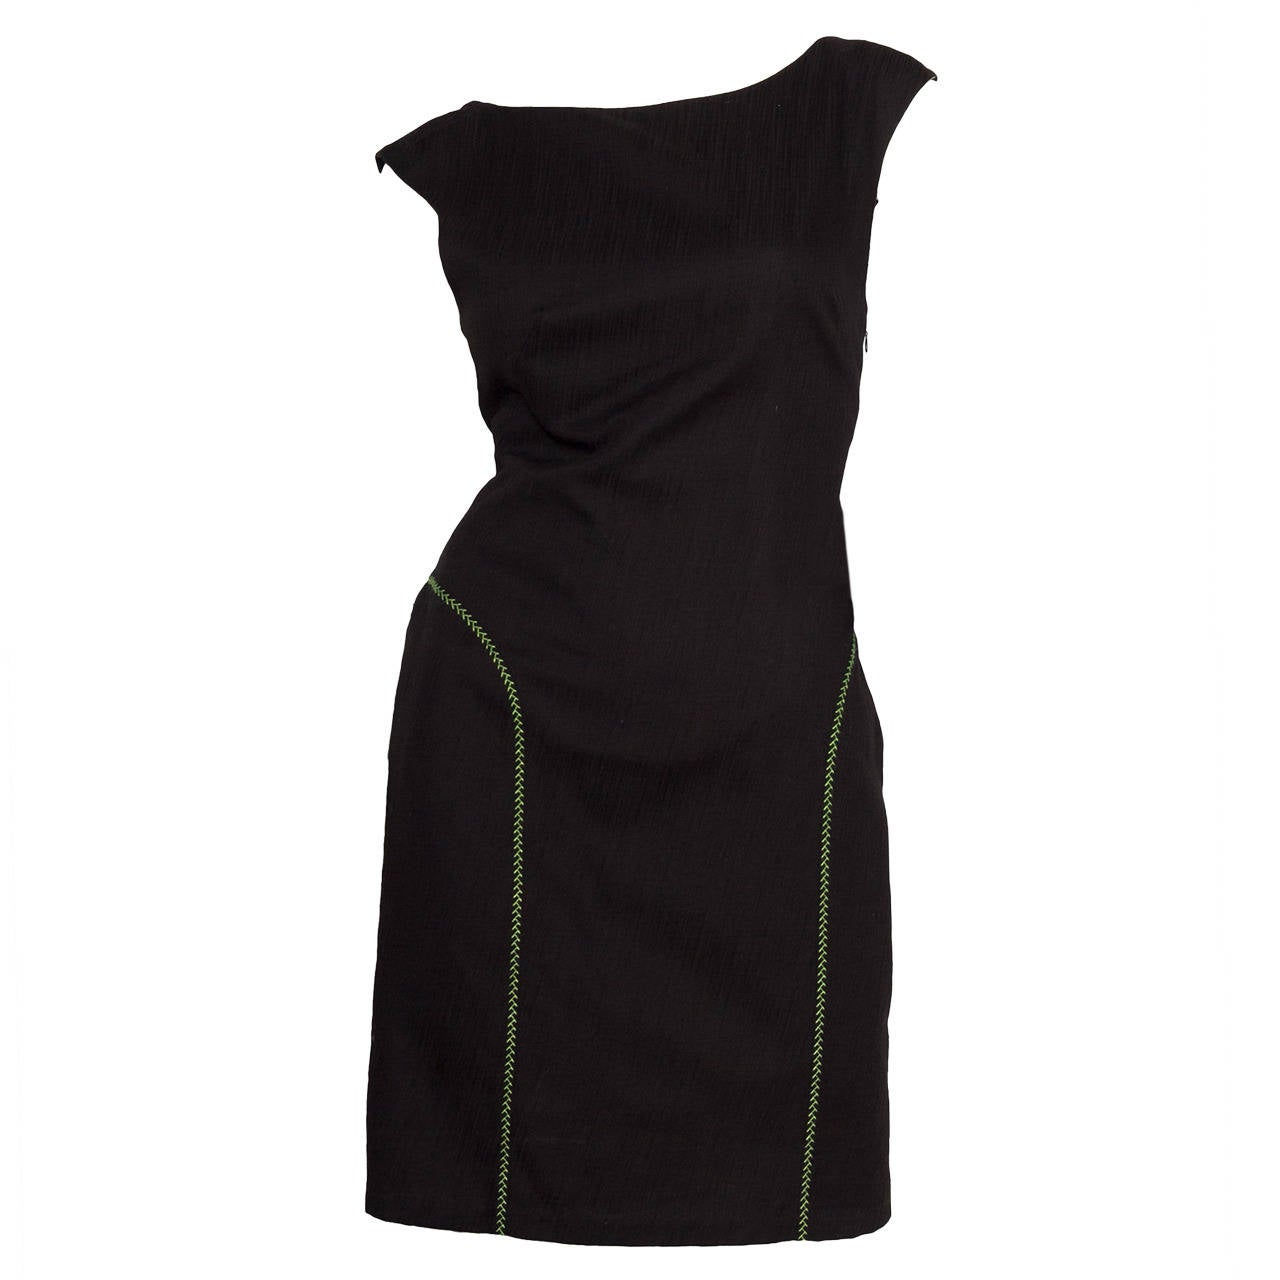 1980s Gianni Versace Couture Black Cotton Dress W. Green Topstitching